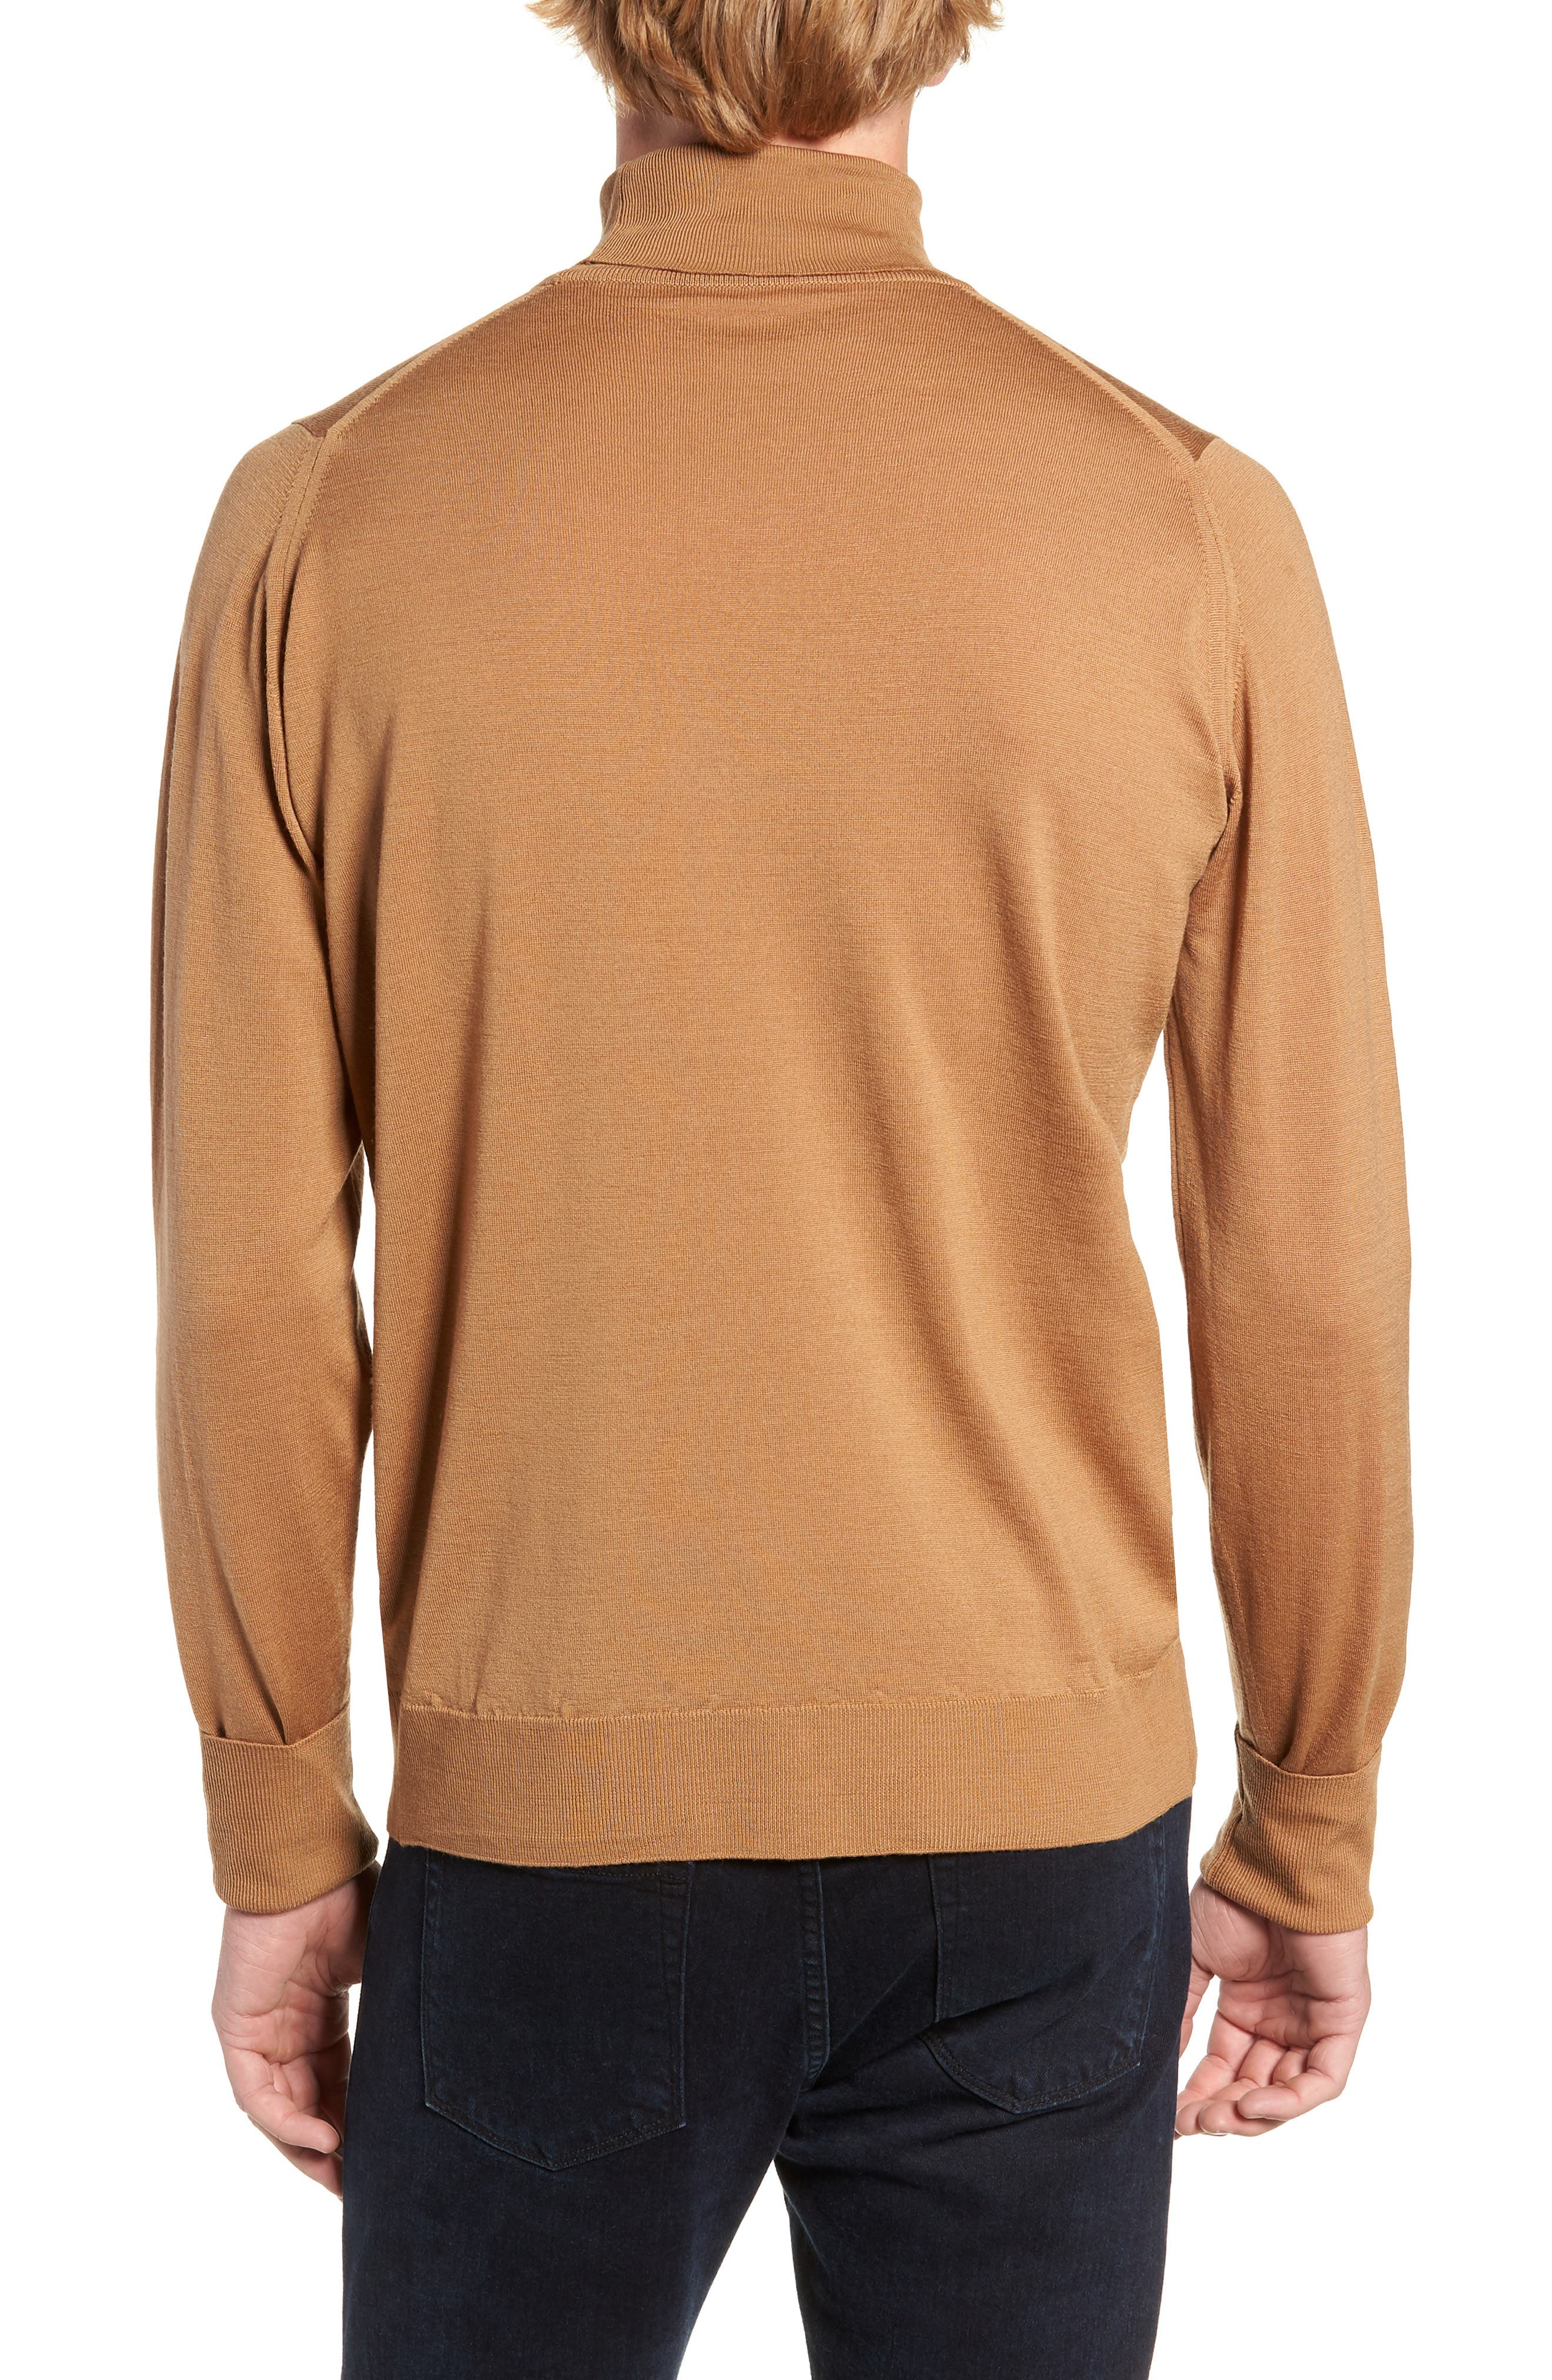 'Richards' Easy Fit Turtleneck Wool Sweater,                             Alternate thumbnail 2, color,                             CAMEL